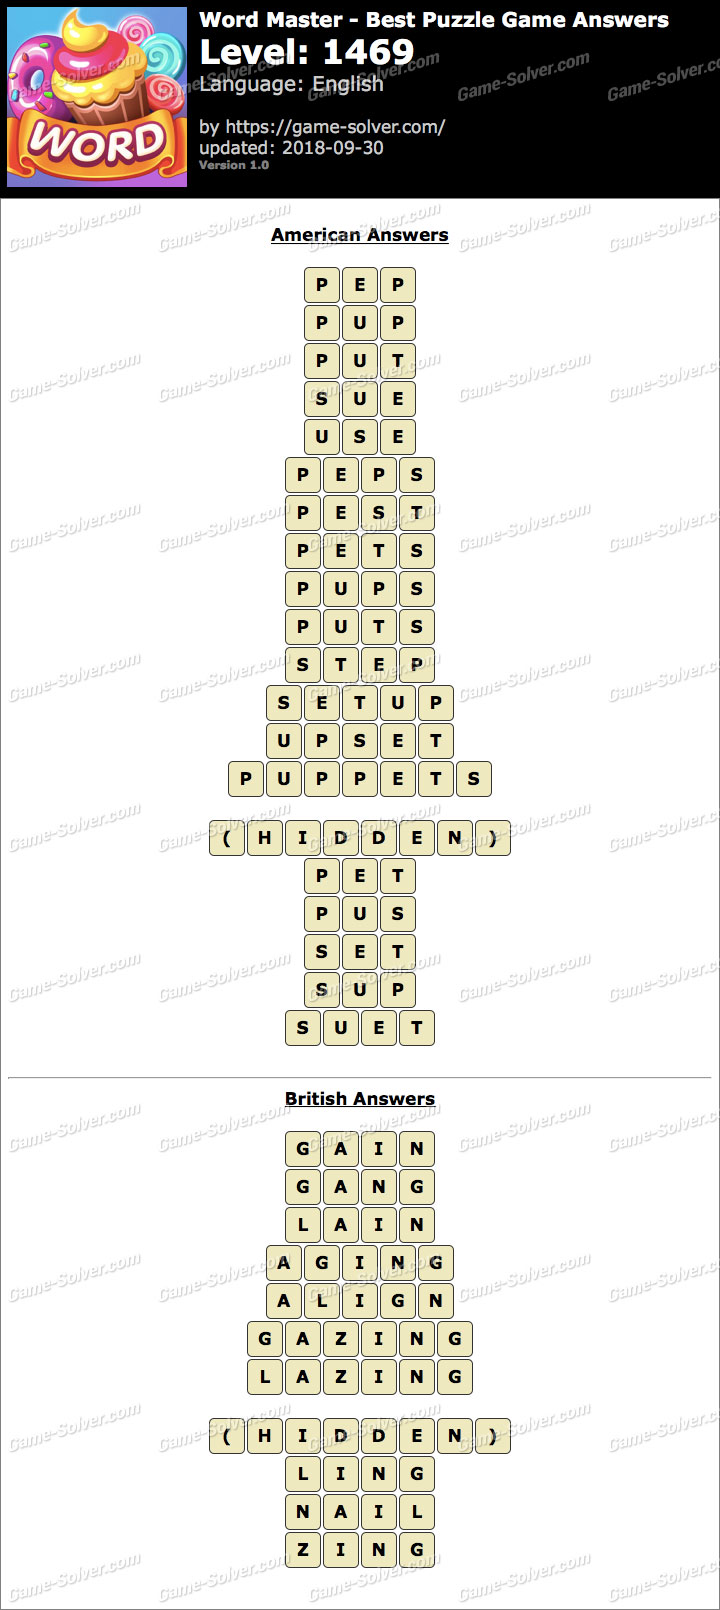 Word Master-Best Puzzle Game Level 1469 Answers